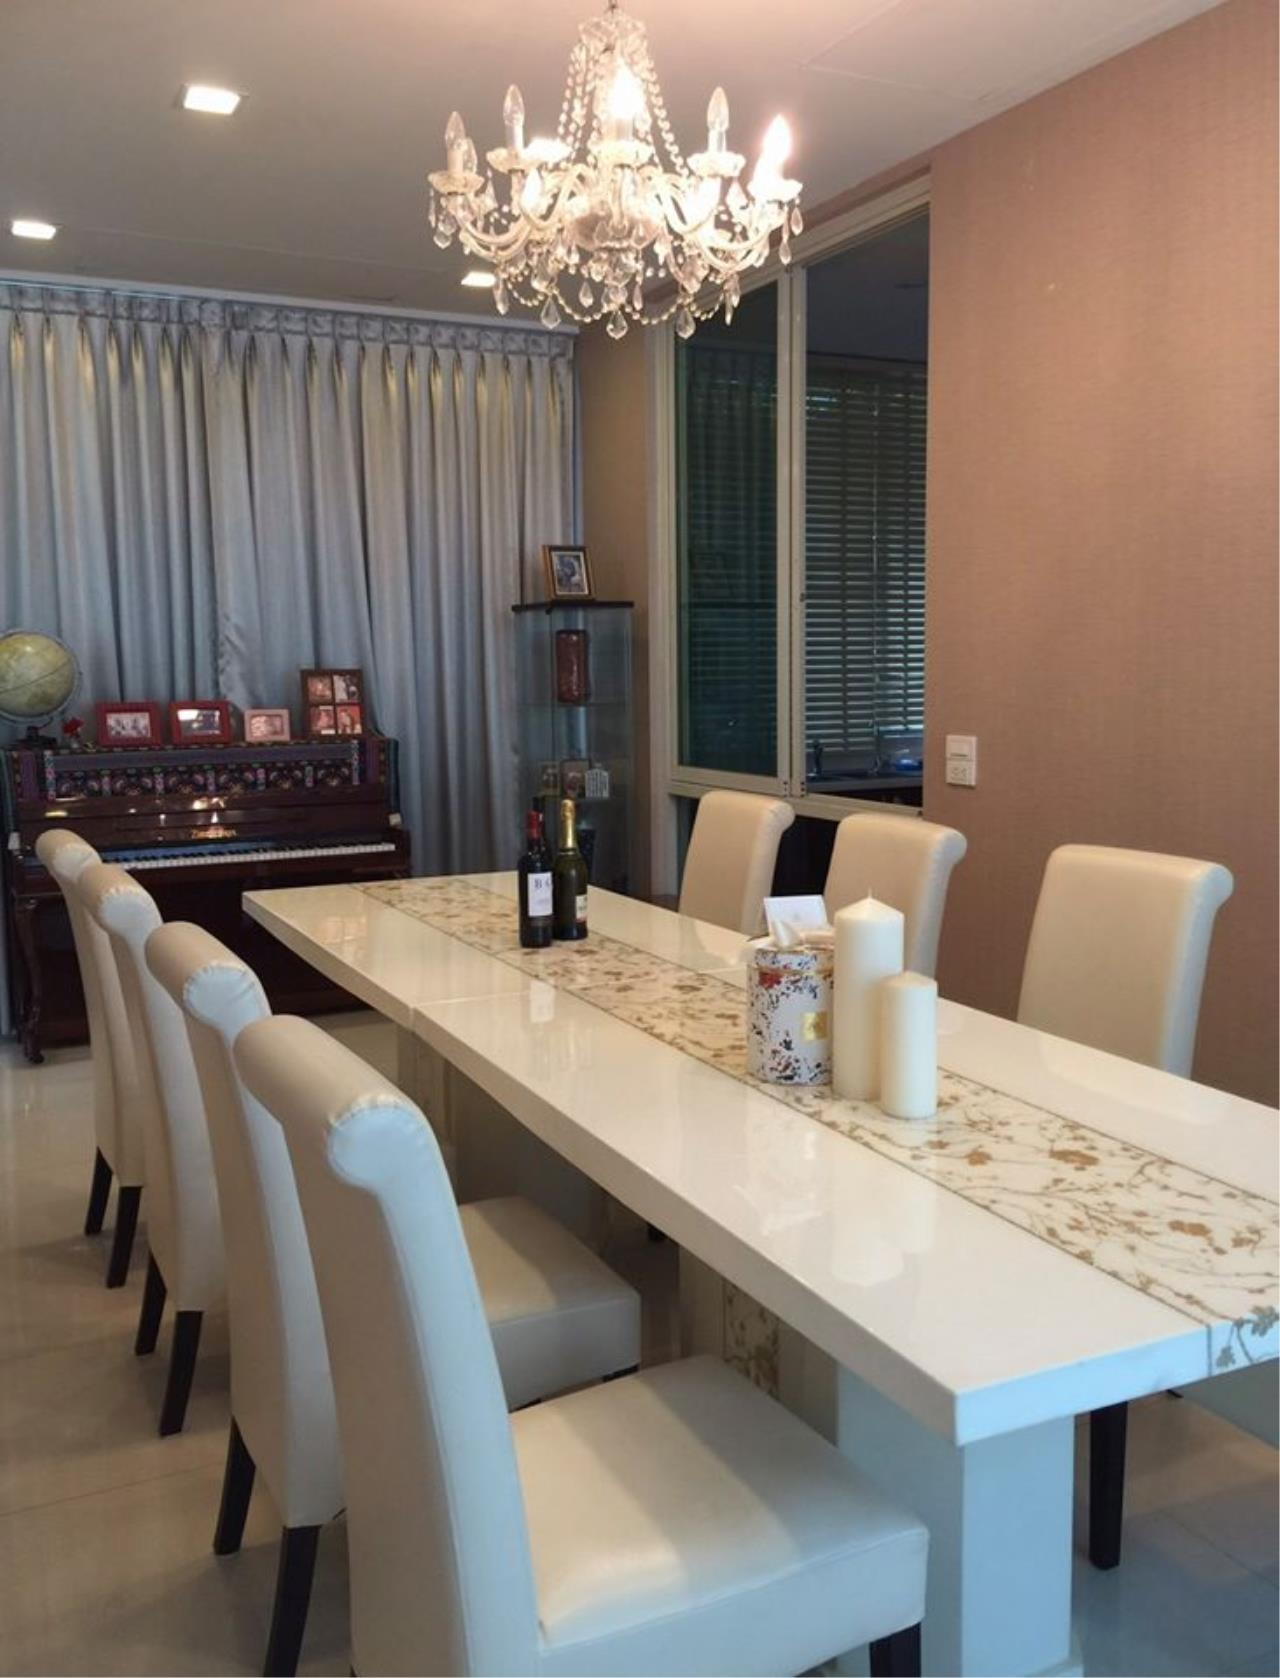 Agent - Natchga Boonkrong  Agency's House 5 Bedrooms for RENT in Suan Laung Phatthanakarn Bangkok 3